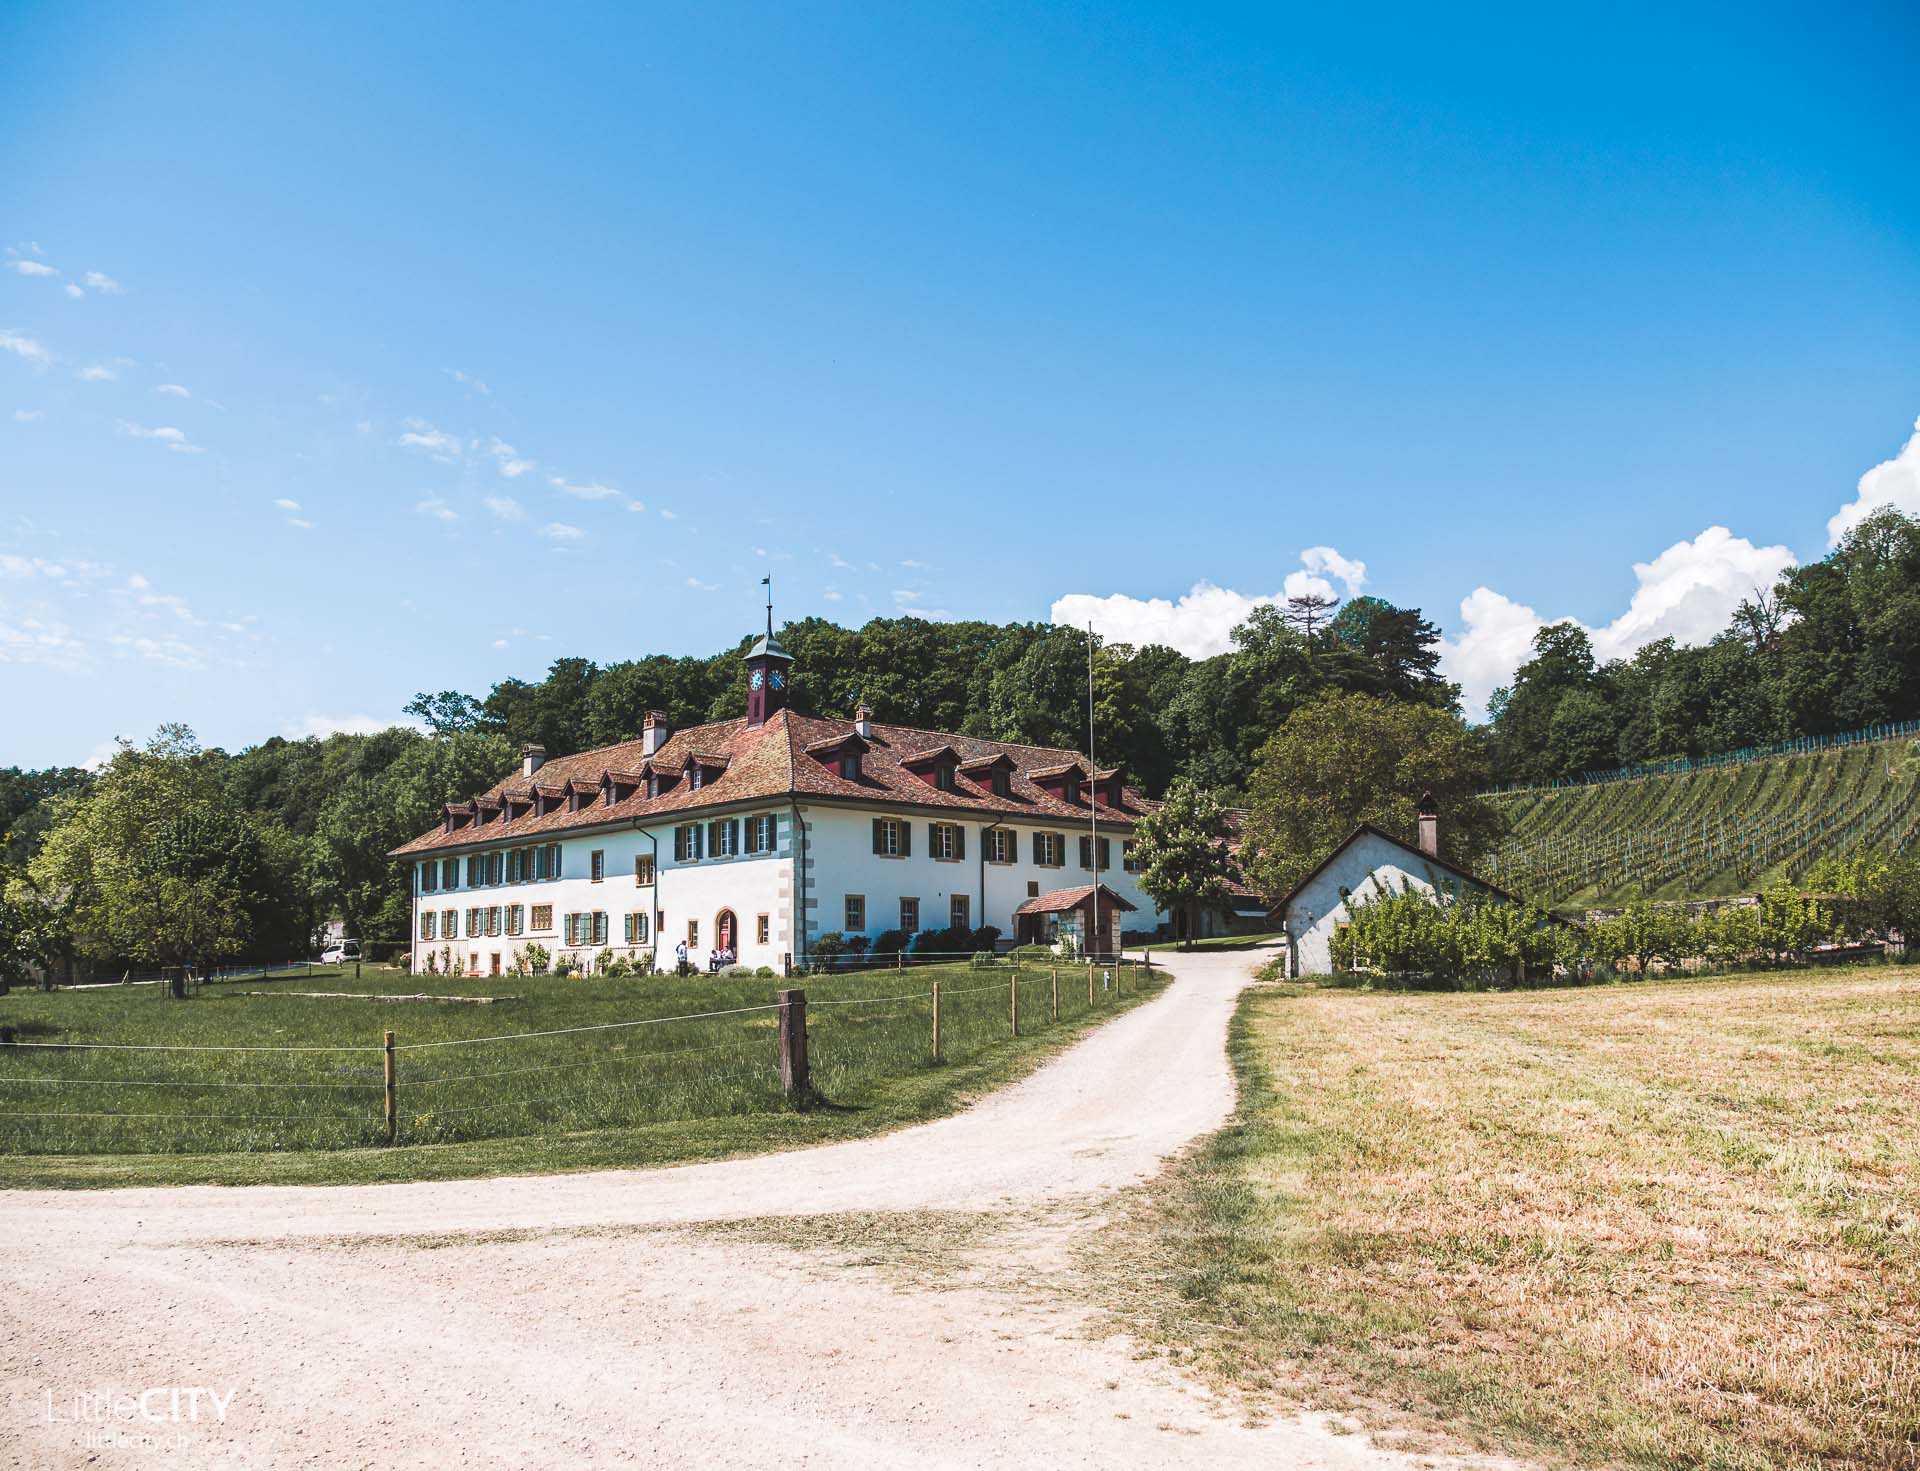 St. Petersinsel Bielersee Kloster Hotel